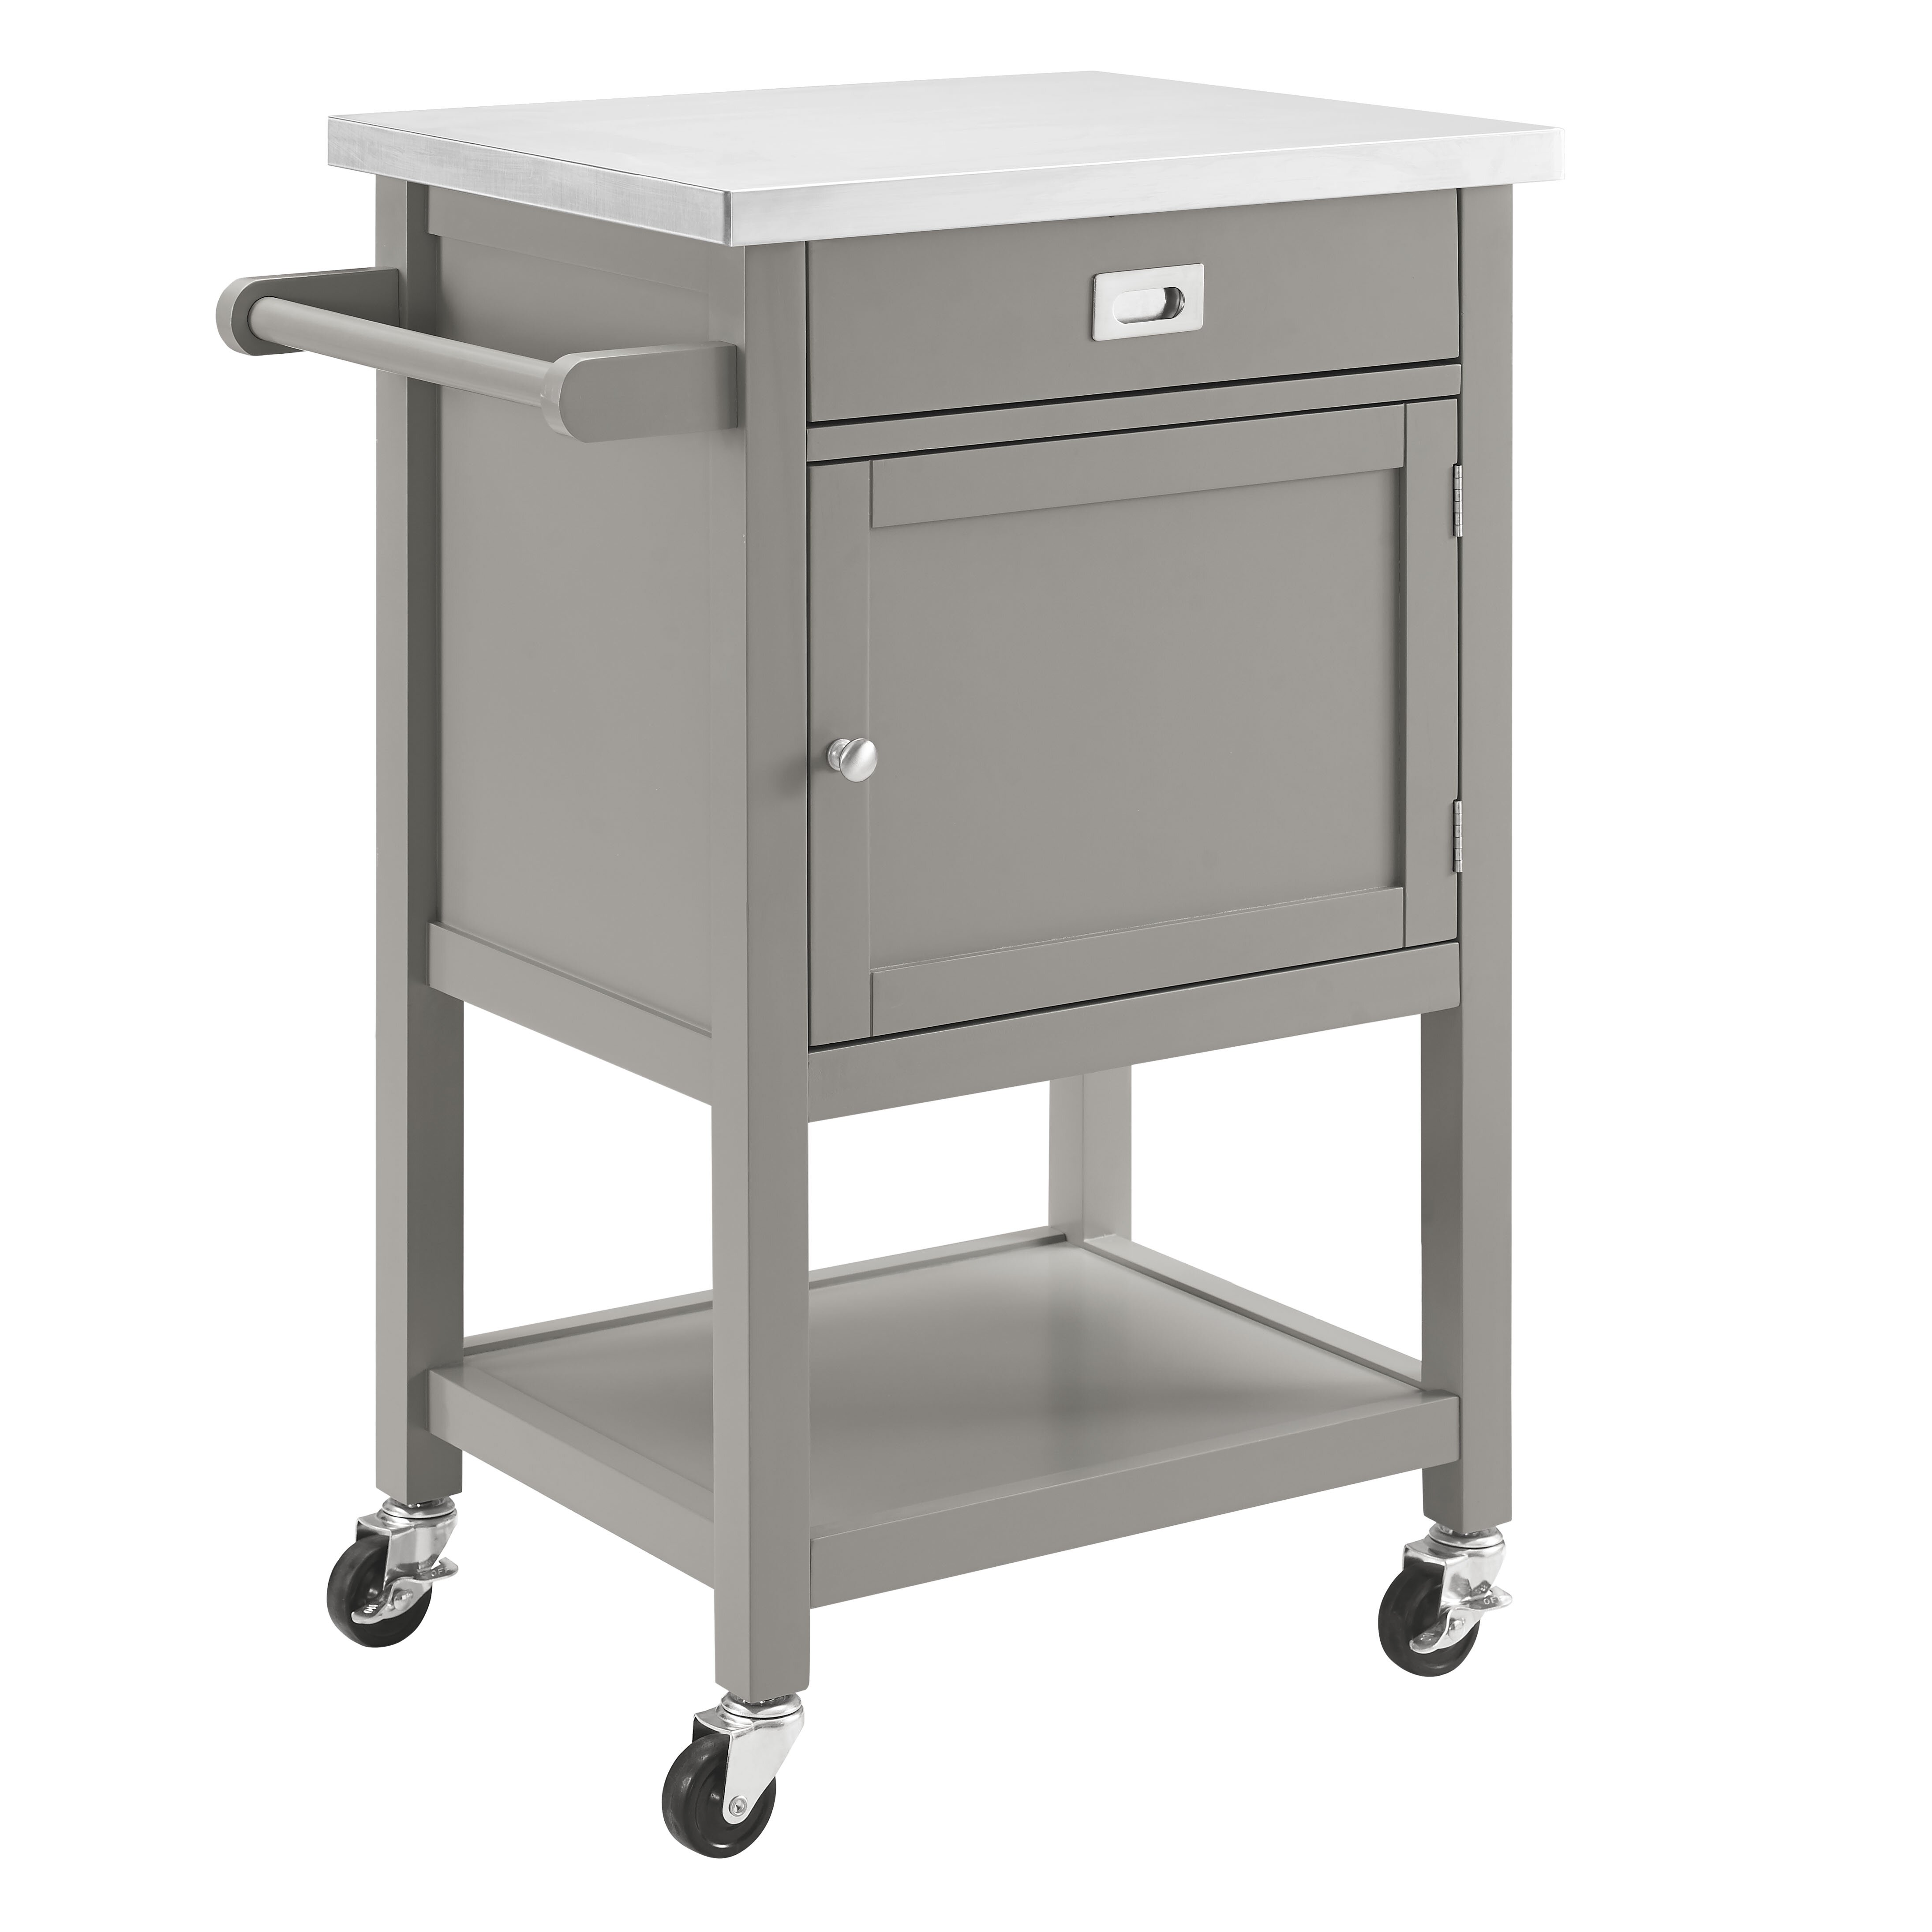 sydney kitchen cart with stainless steel top wayfair columbus kitchen cart with stainless steel top gray tms